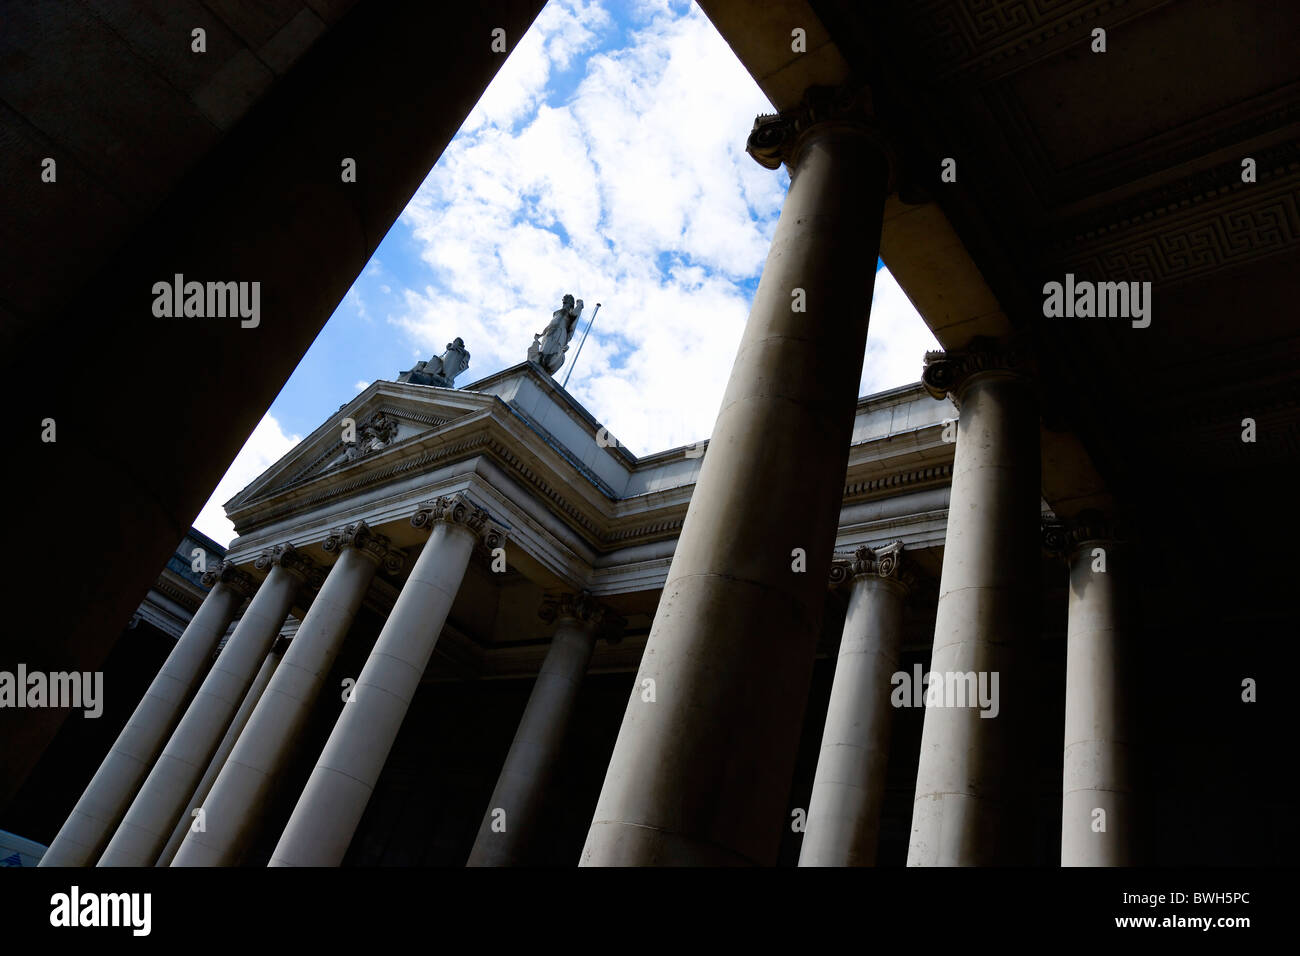 Ireland, County Dublin, Dublin City, The 18th Century Bank Of Ireland building in College Green - Stock Image